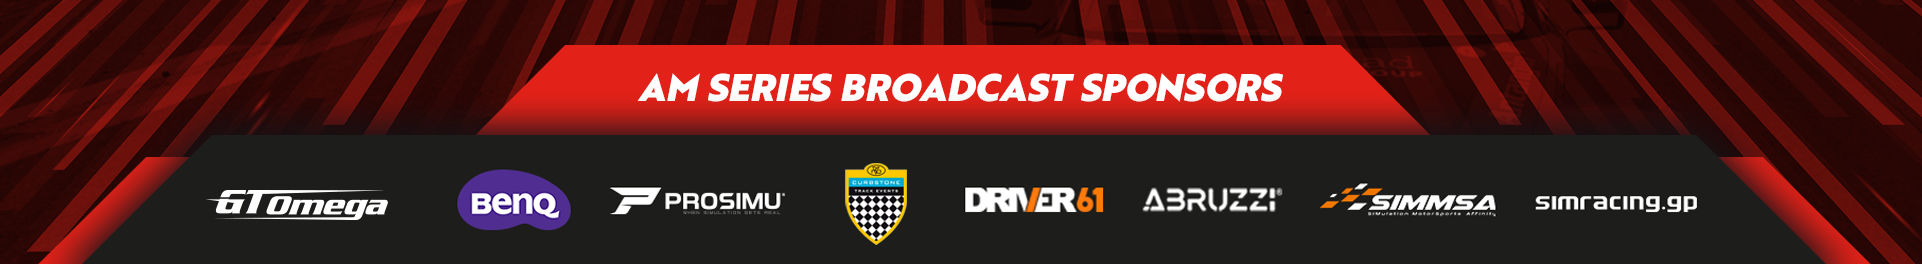 am-series-sponsors-new-png SRO E-Sport GT Series AM Championship Final | Win A Prize Every 10 Minutes!